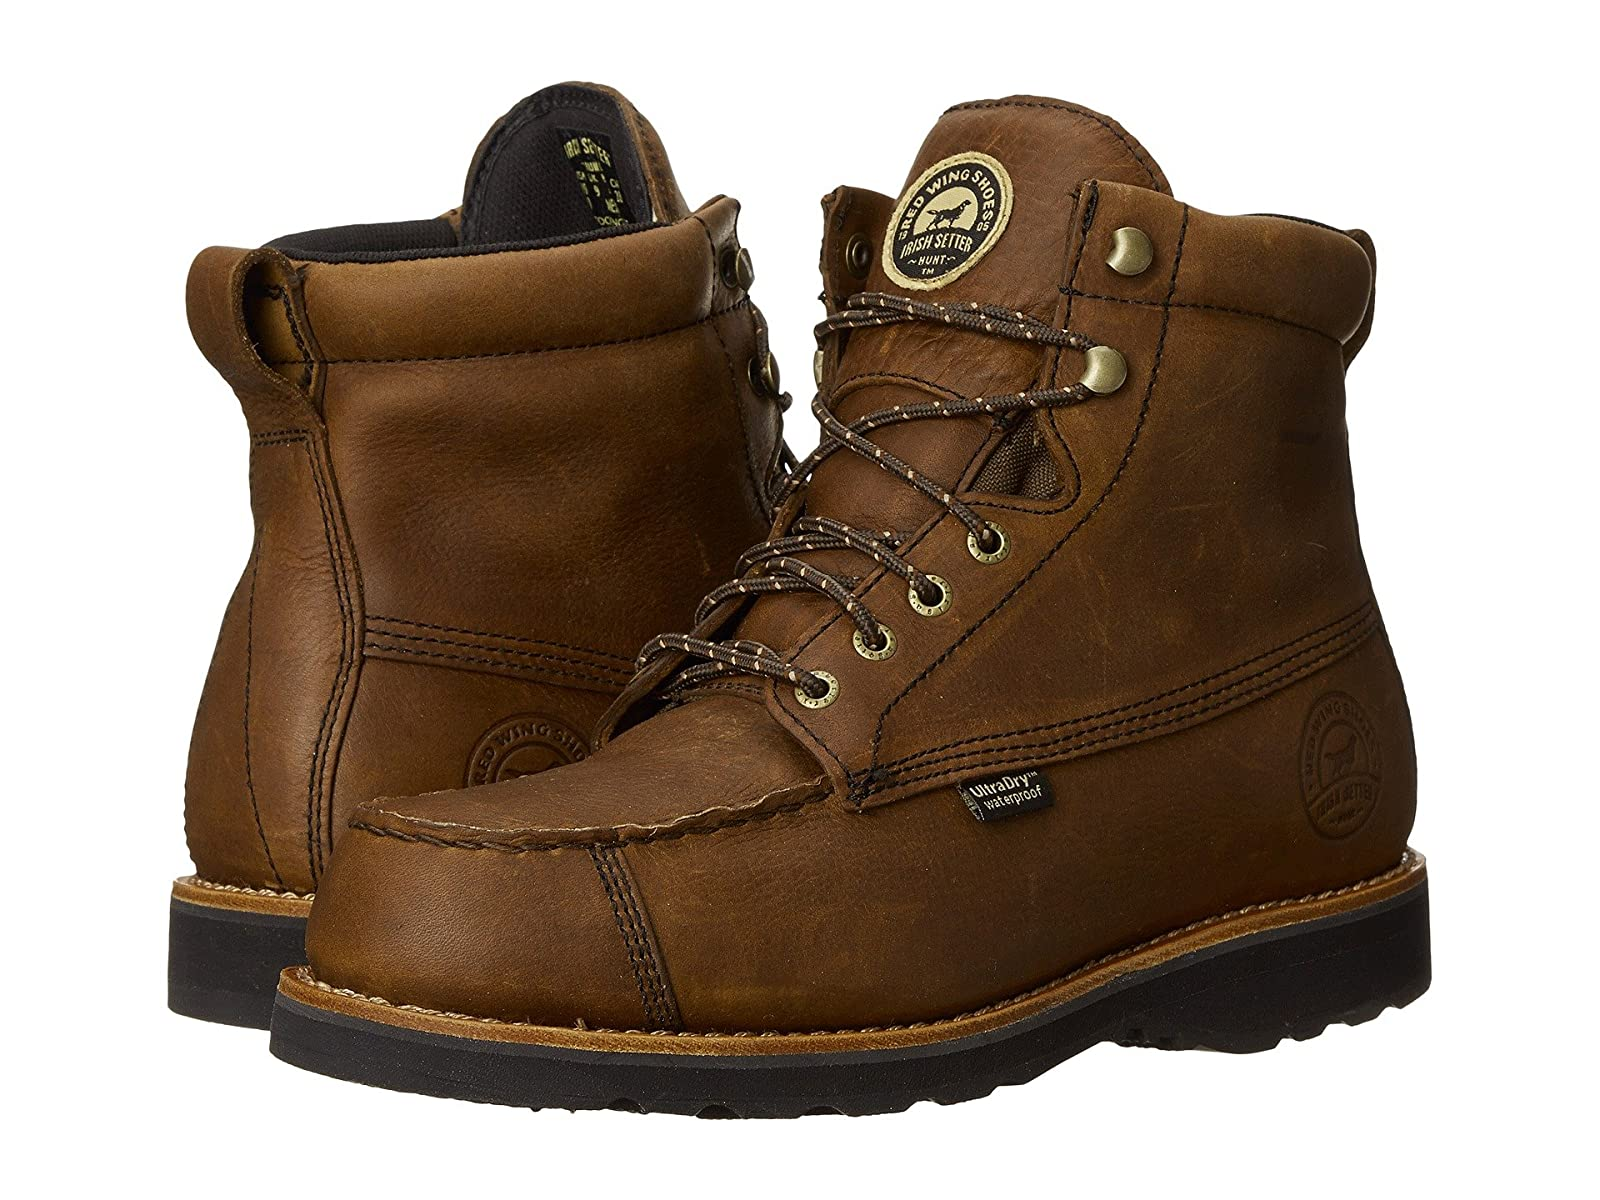 Irish Setter Wingshooter 807Affordable and distinctive shoes